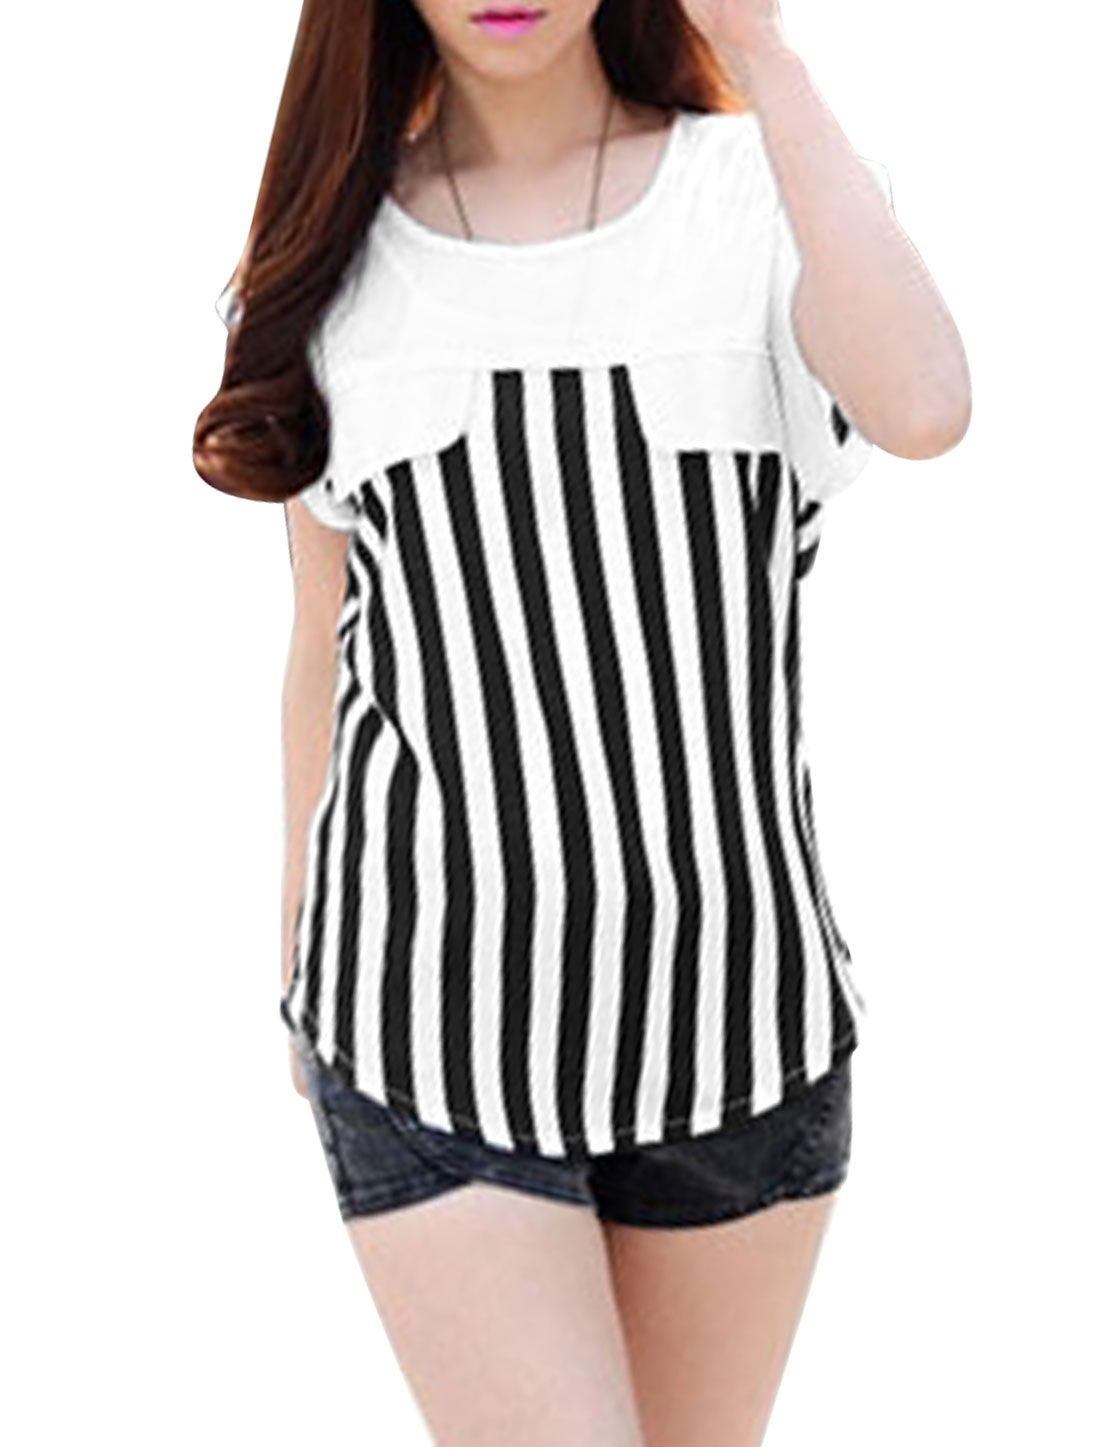 Lady Round Neck Sleeveless Stripes Semi Sheer T-Shirt Black S